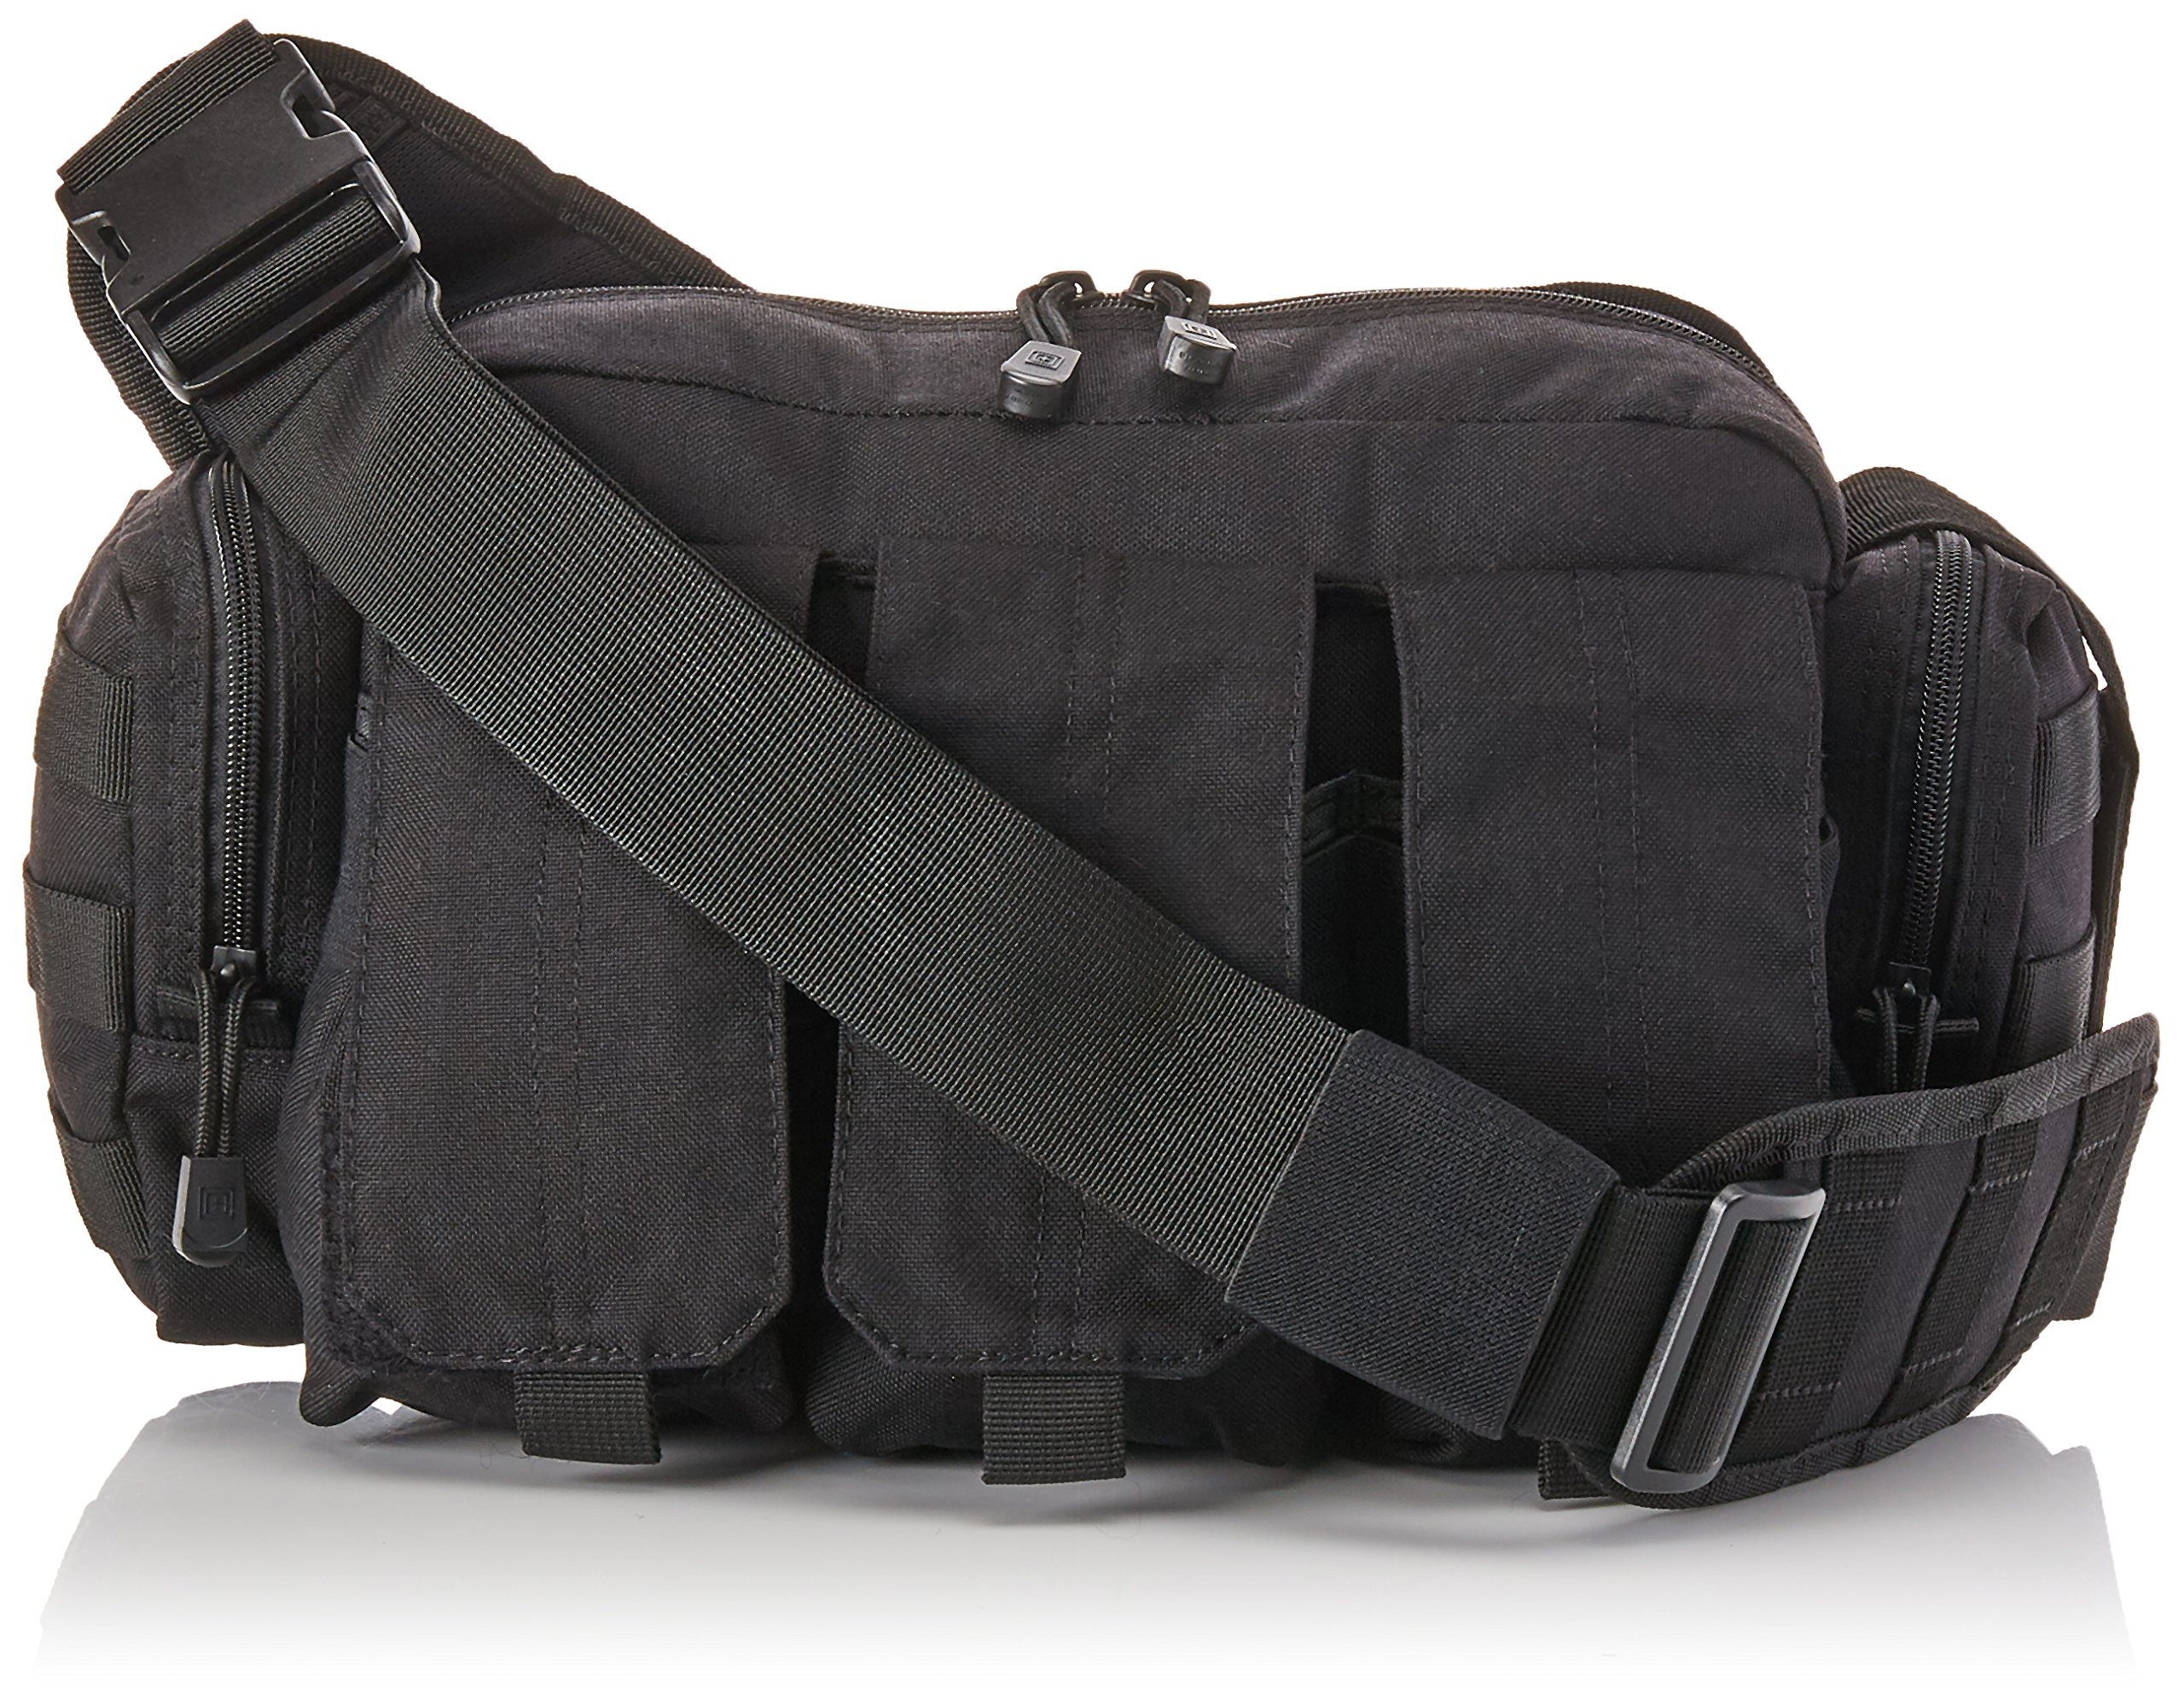 5.11 Tactical Bail Out Bag Molle Ammo Magazine Carrier Pack for Responders, Style 56026 by 5.11 (Image #1)